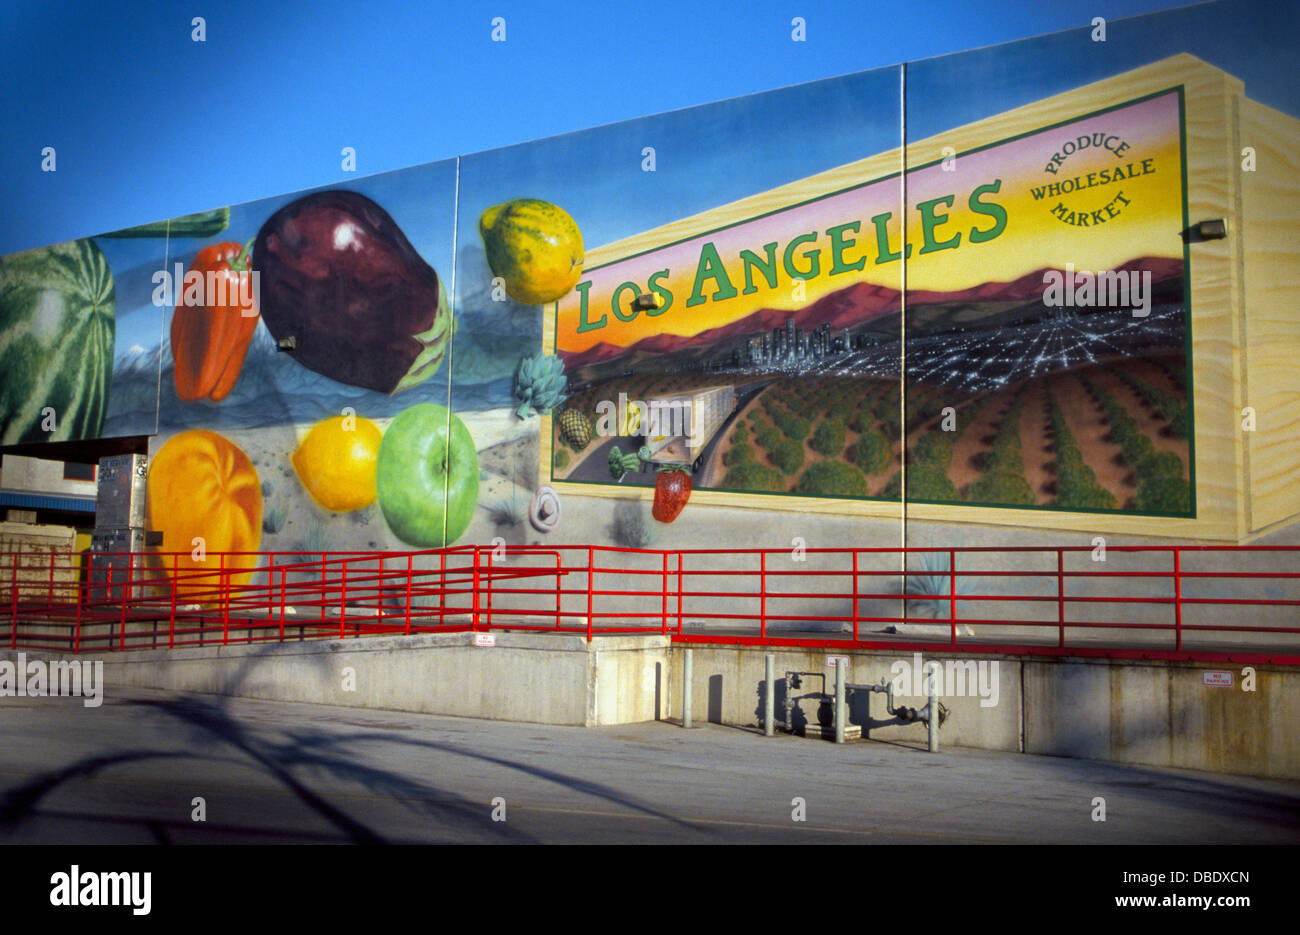 A monumental wall mural of colorful fruits and vegetables a monumental wall mural of colorful fruits and vegetables decorates a warehouse at the los angeles wholesale produce market in southern california amipublicfo Gallery